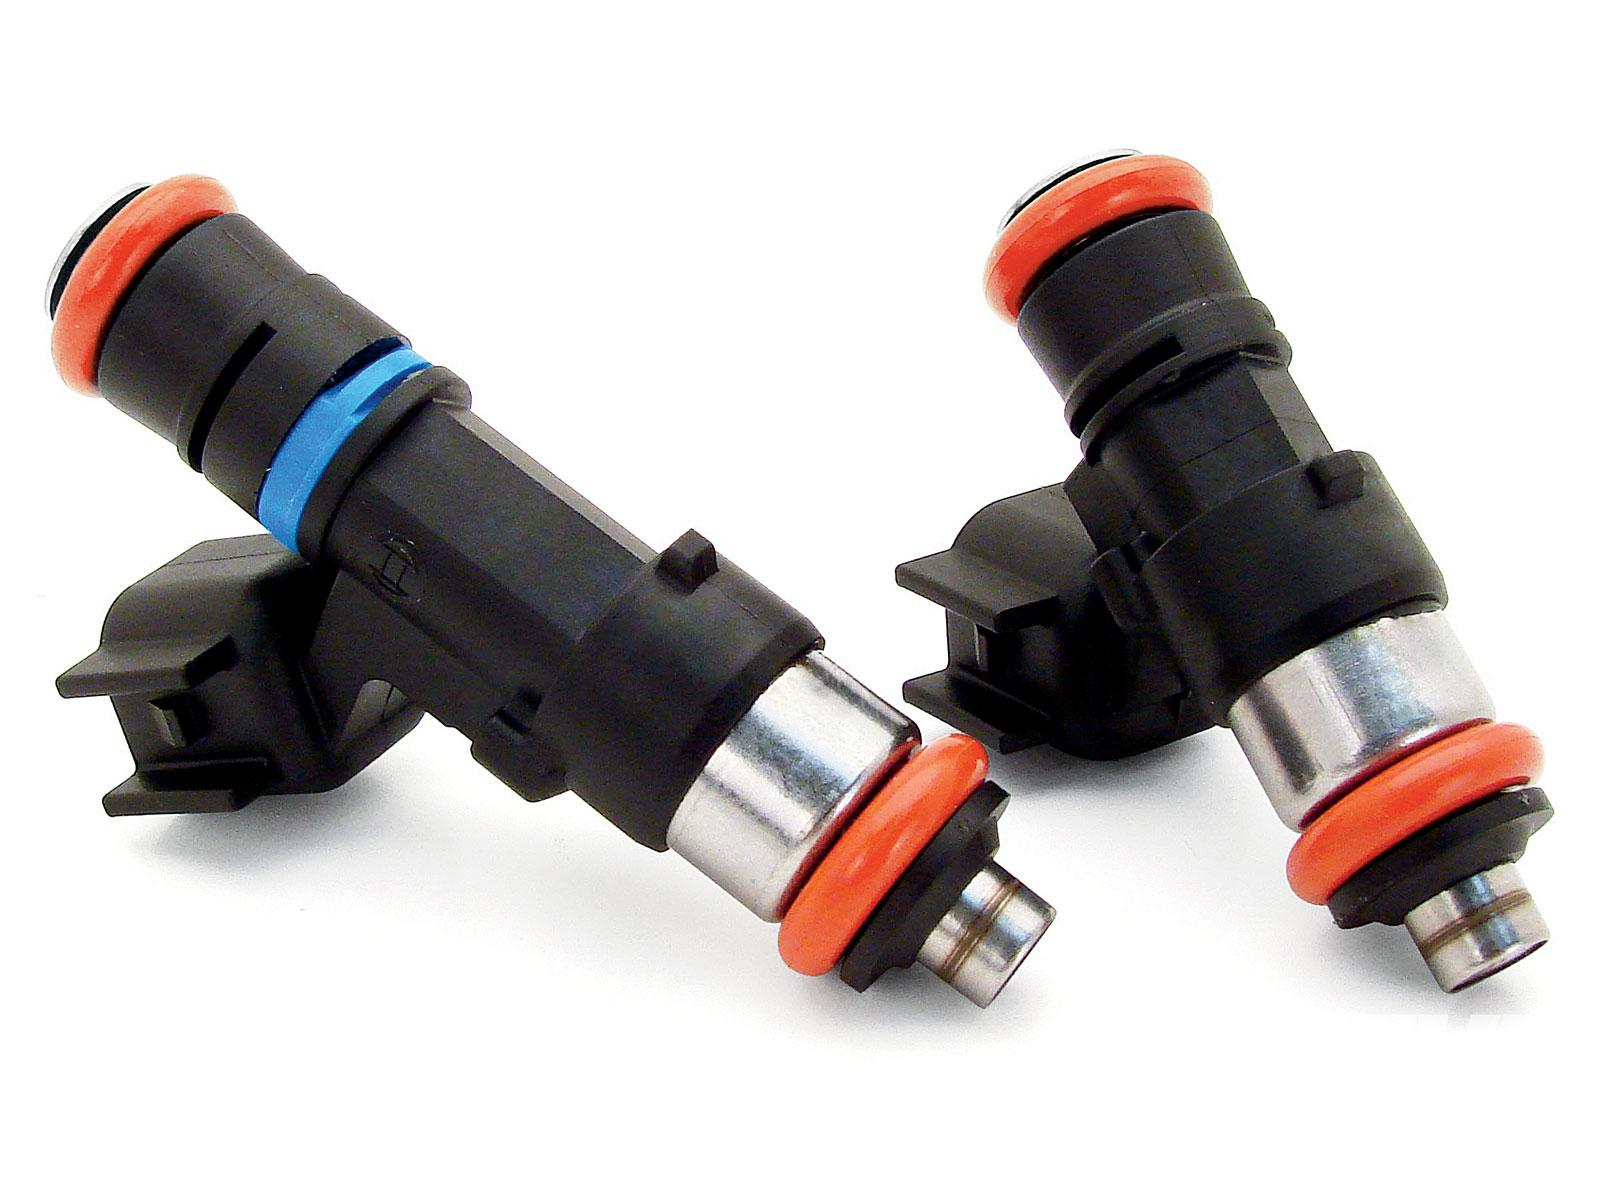 How To Test Fuel Injectors Without Paying Visit to